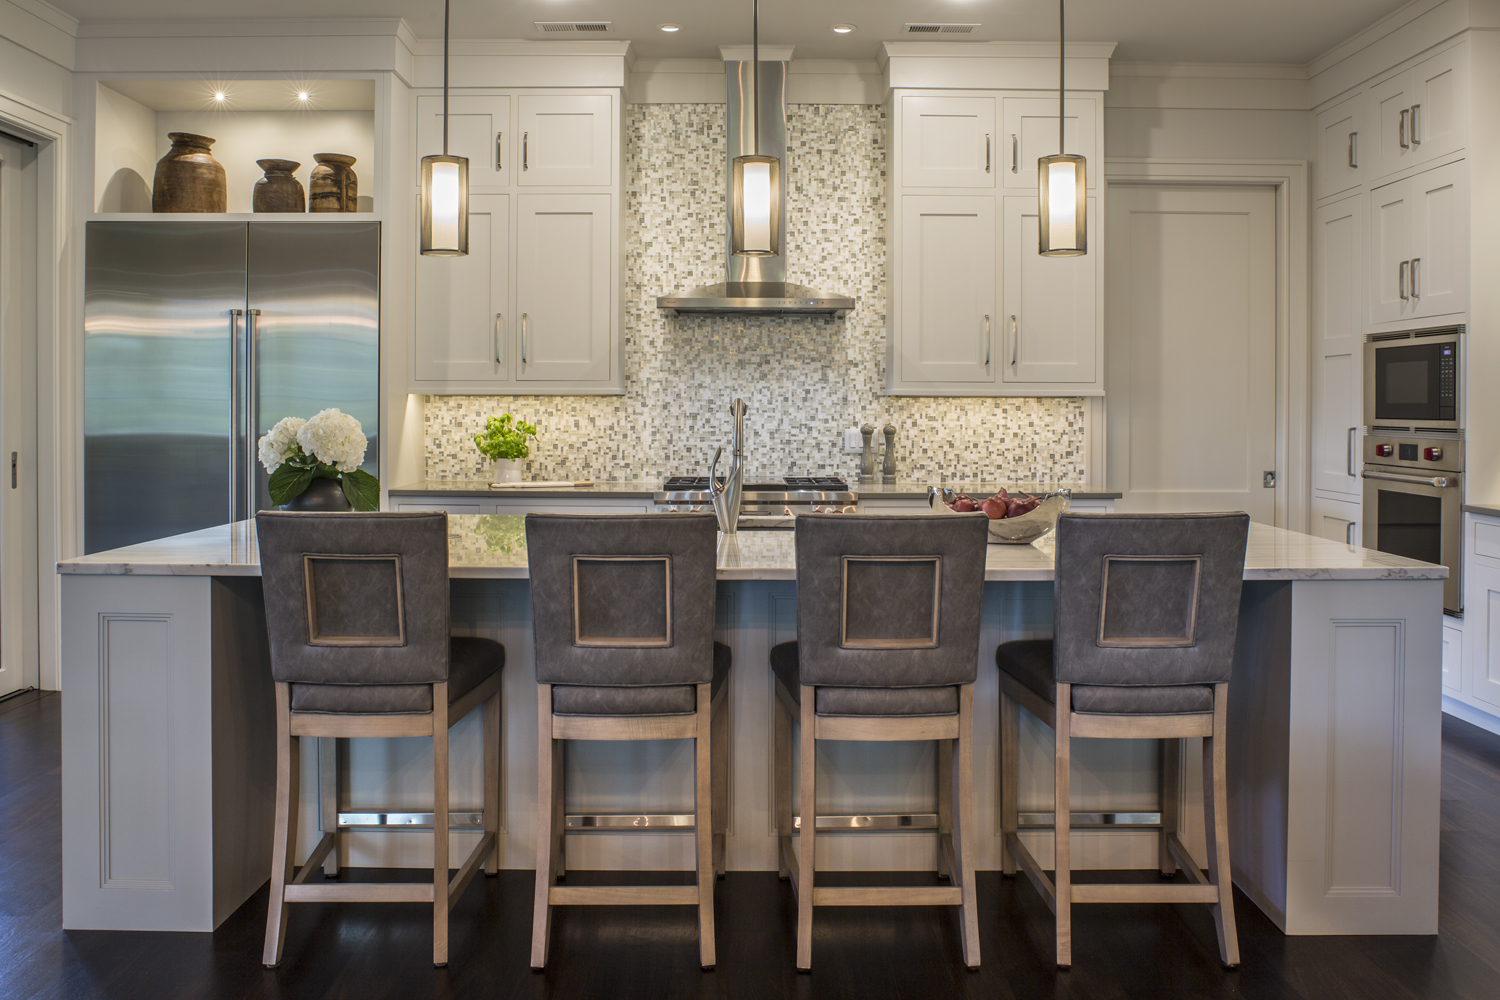 A trio of Hammerton Studio Uptown Mesh pendants in a kitchen designed by Allard & Roberts, Asheville NC